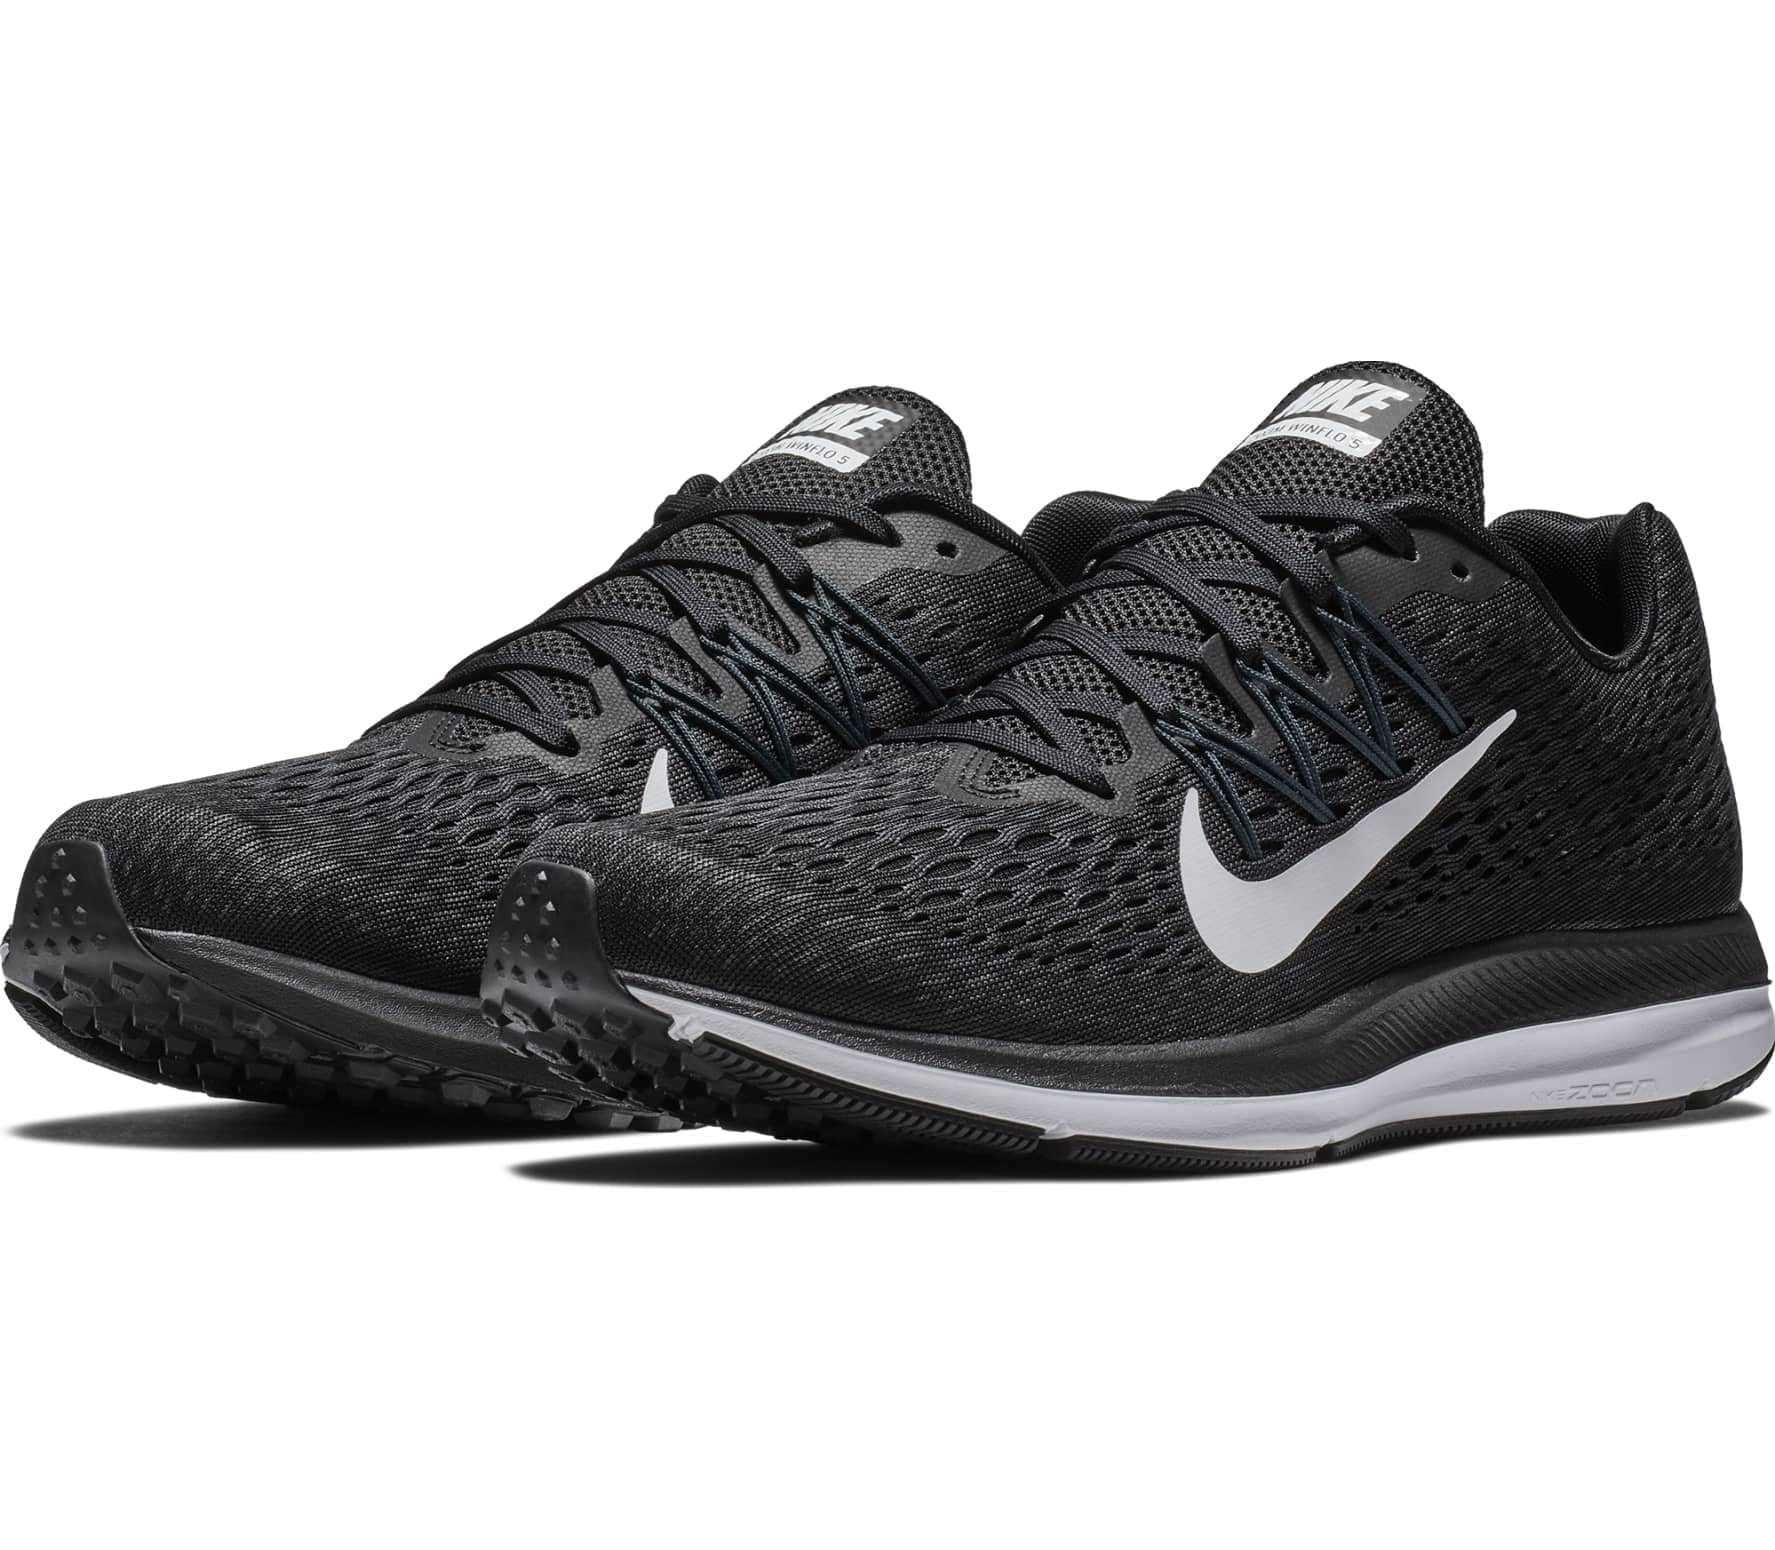 best website f9c10 384b8 Nike - Air Zoom Winflo 5 men's running shoes (black)